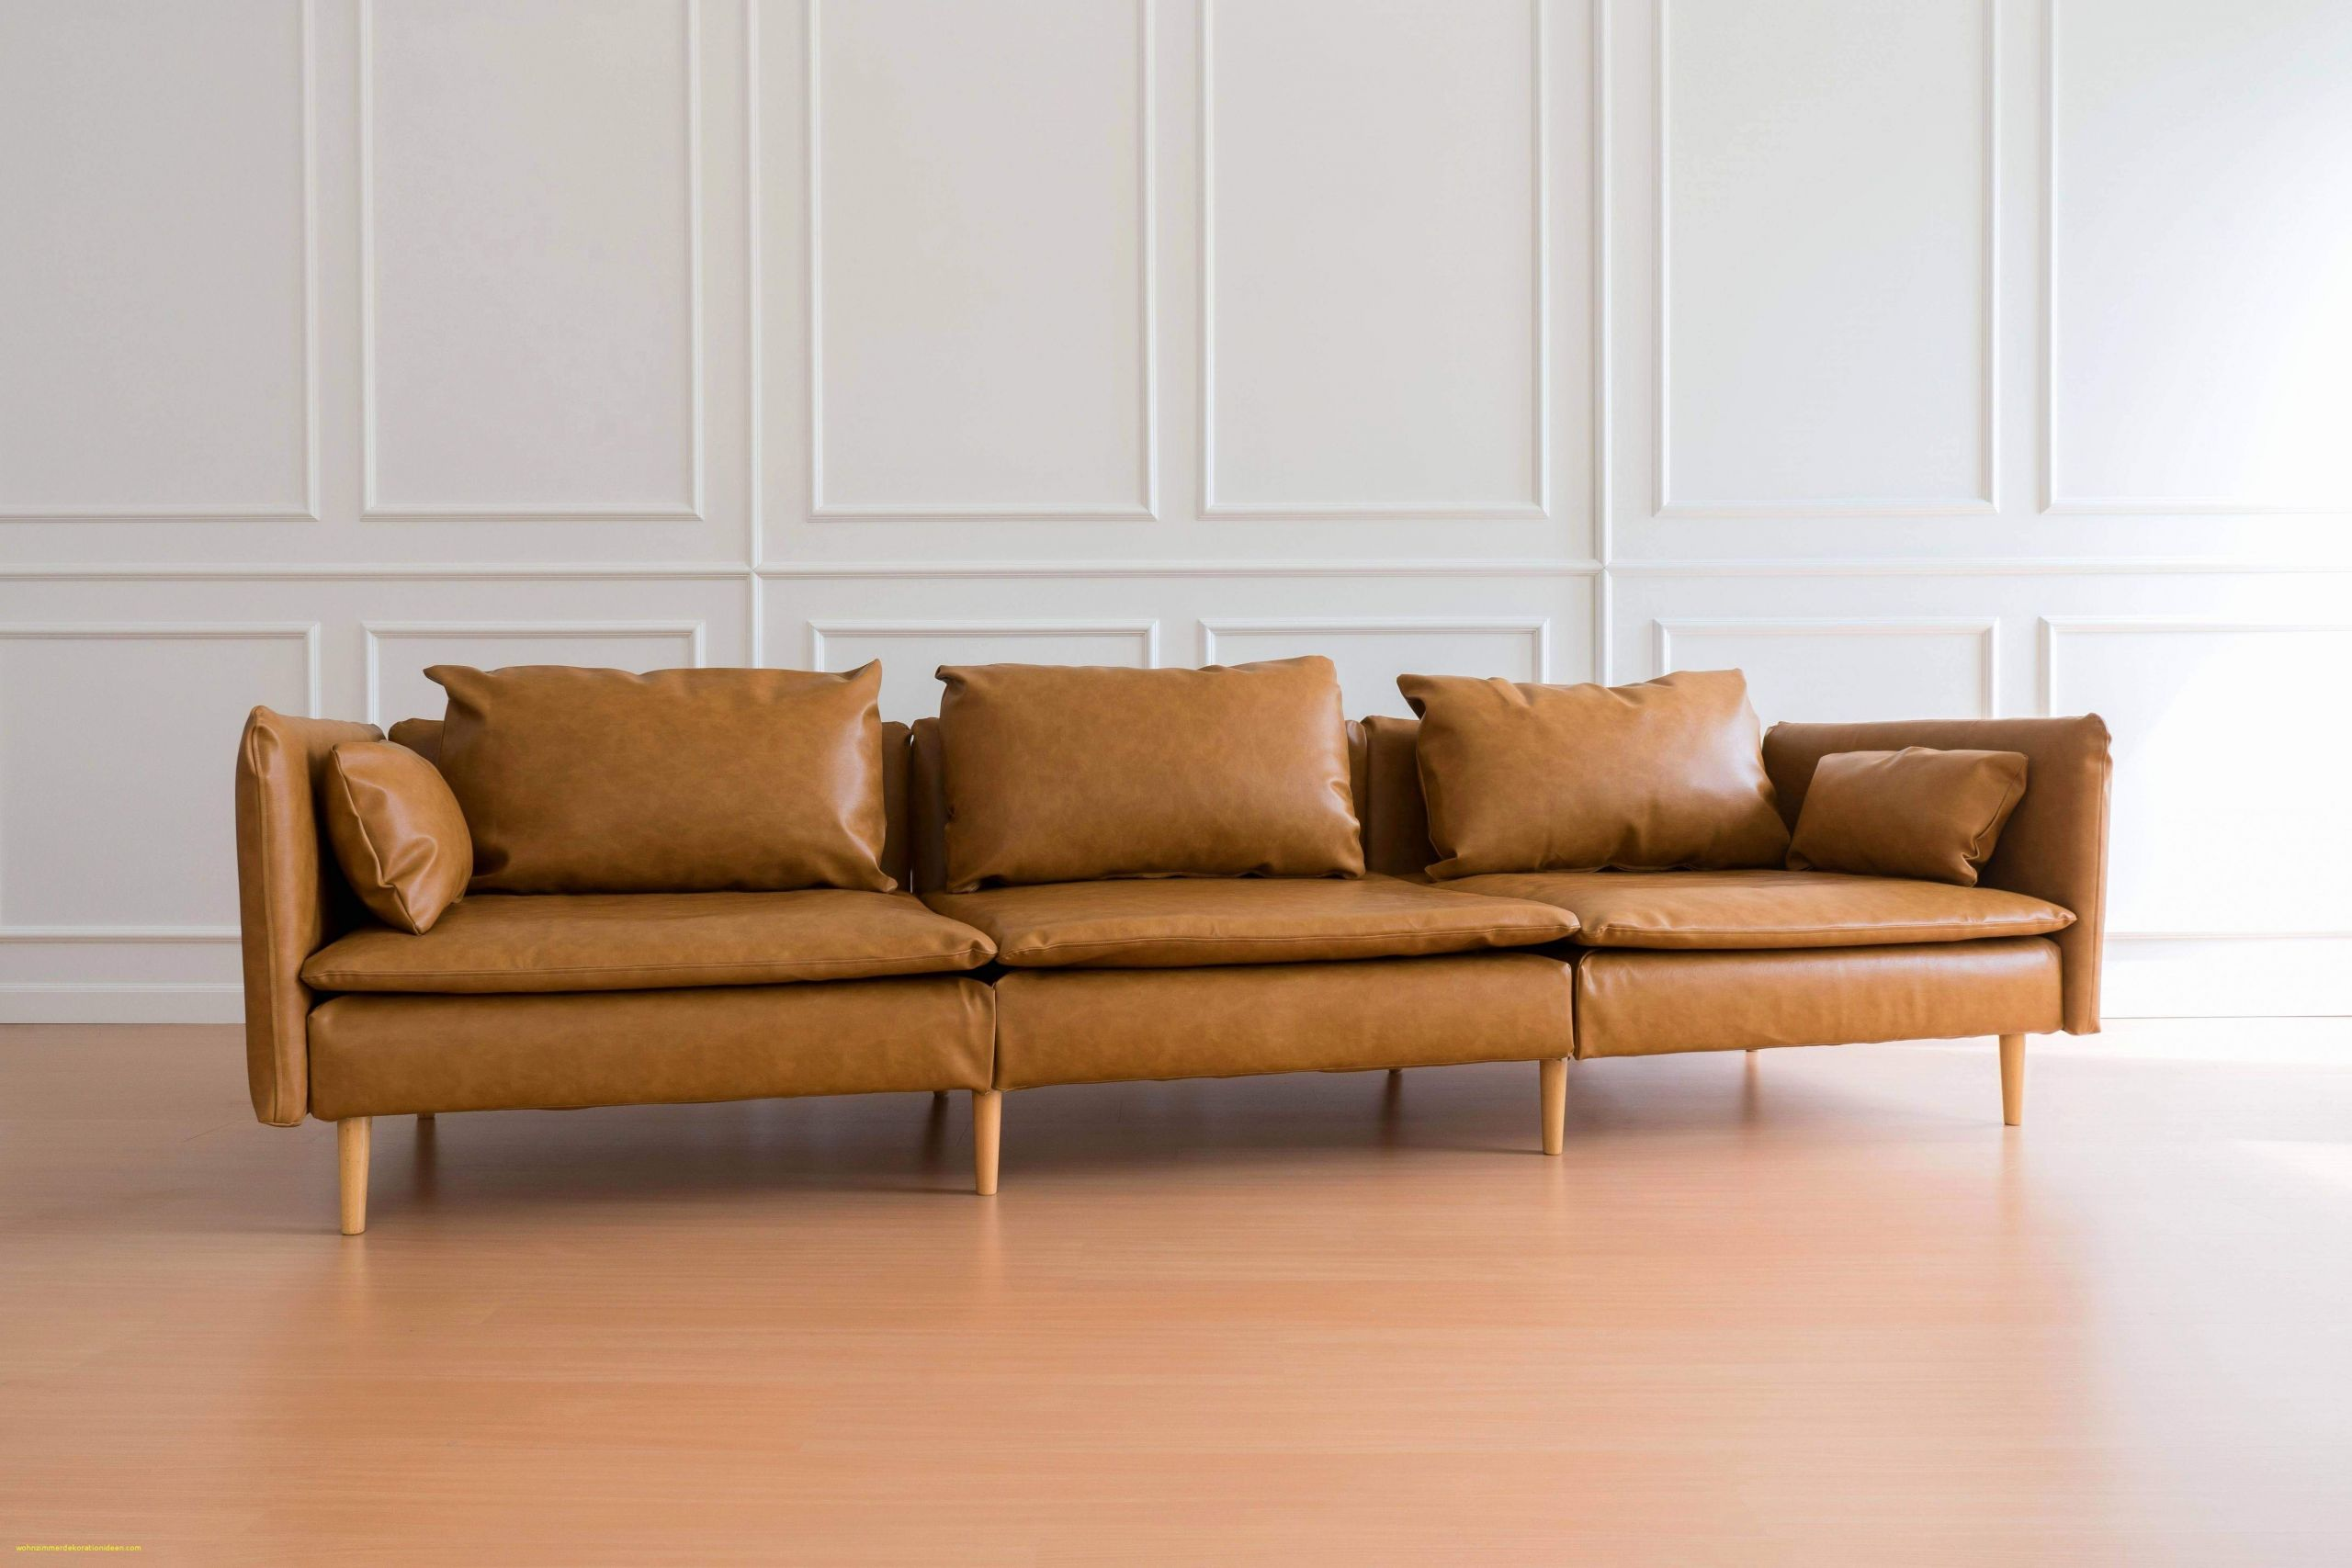 wohnzimmer couch design luxury sofa bed chairs rabbssteak house of wohnzimmer couch design